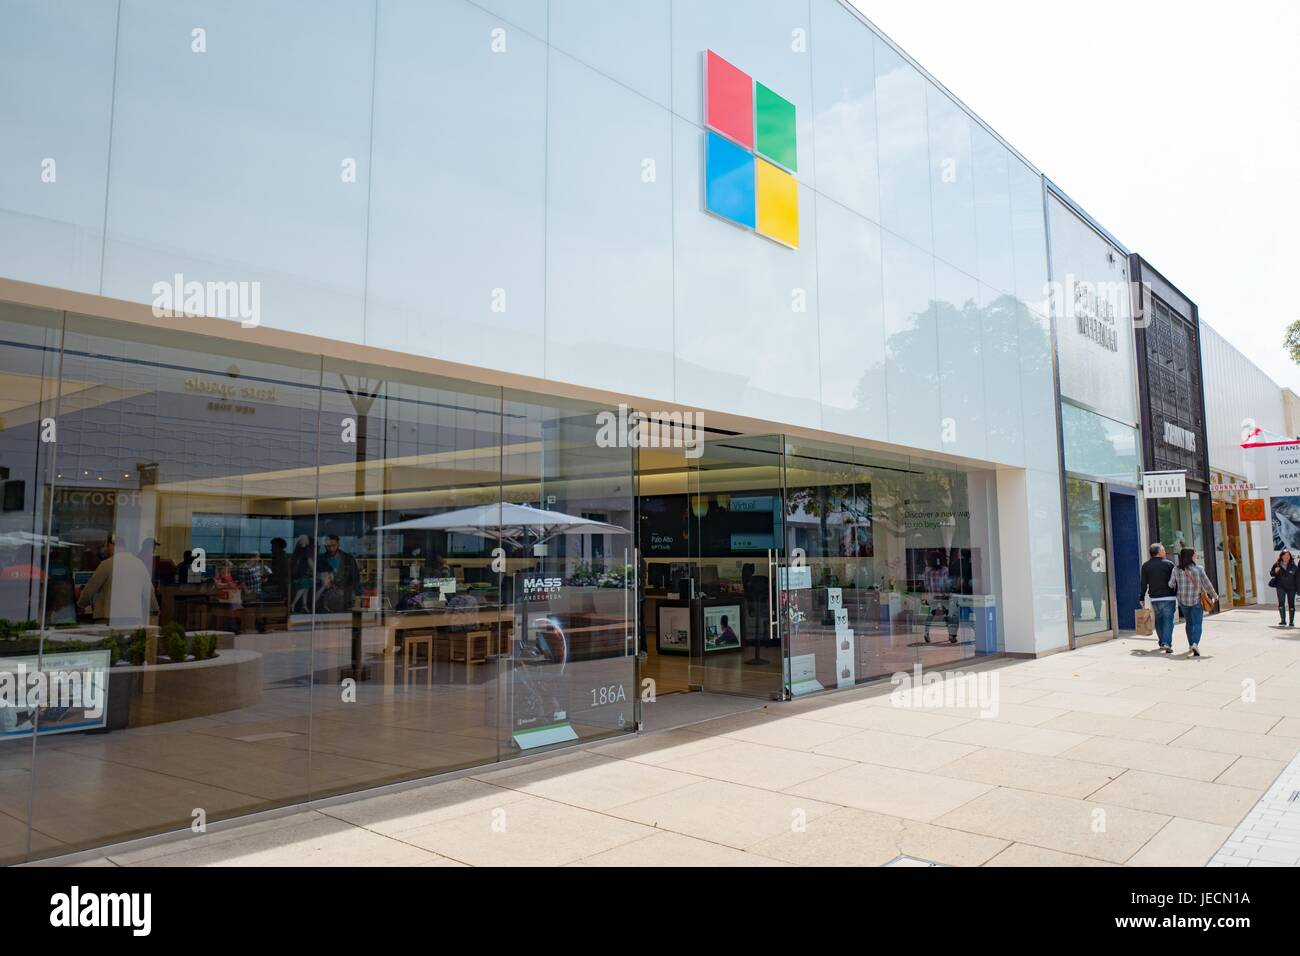 Signage and logo for Microsoft retail store at the Stanford Shopping Center, an upscale outdoor shopping mall in - Stock Image